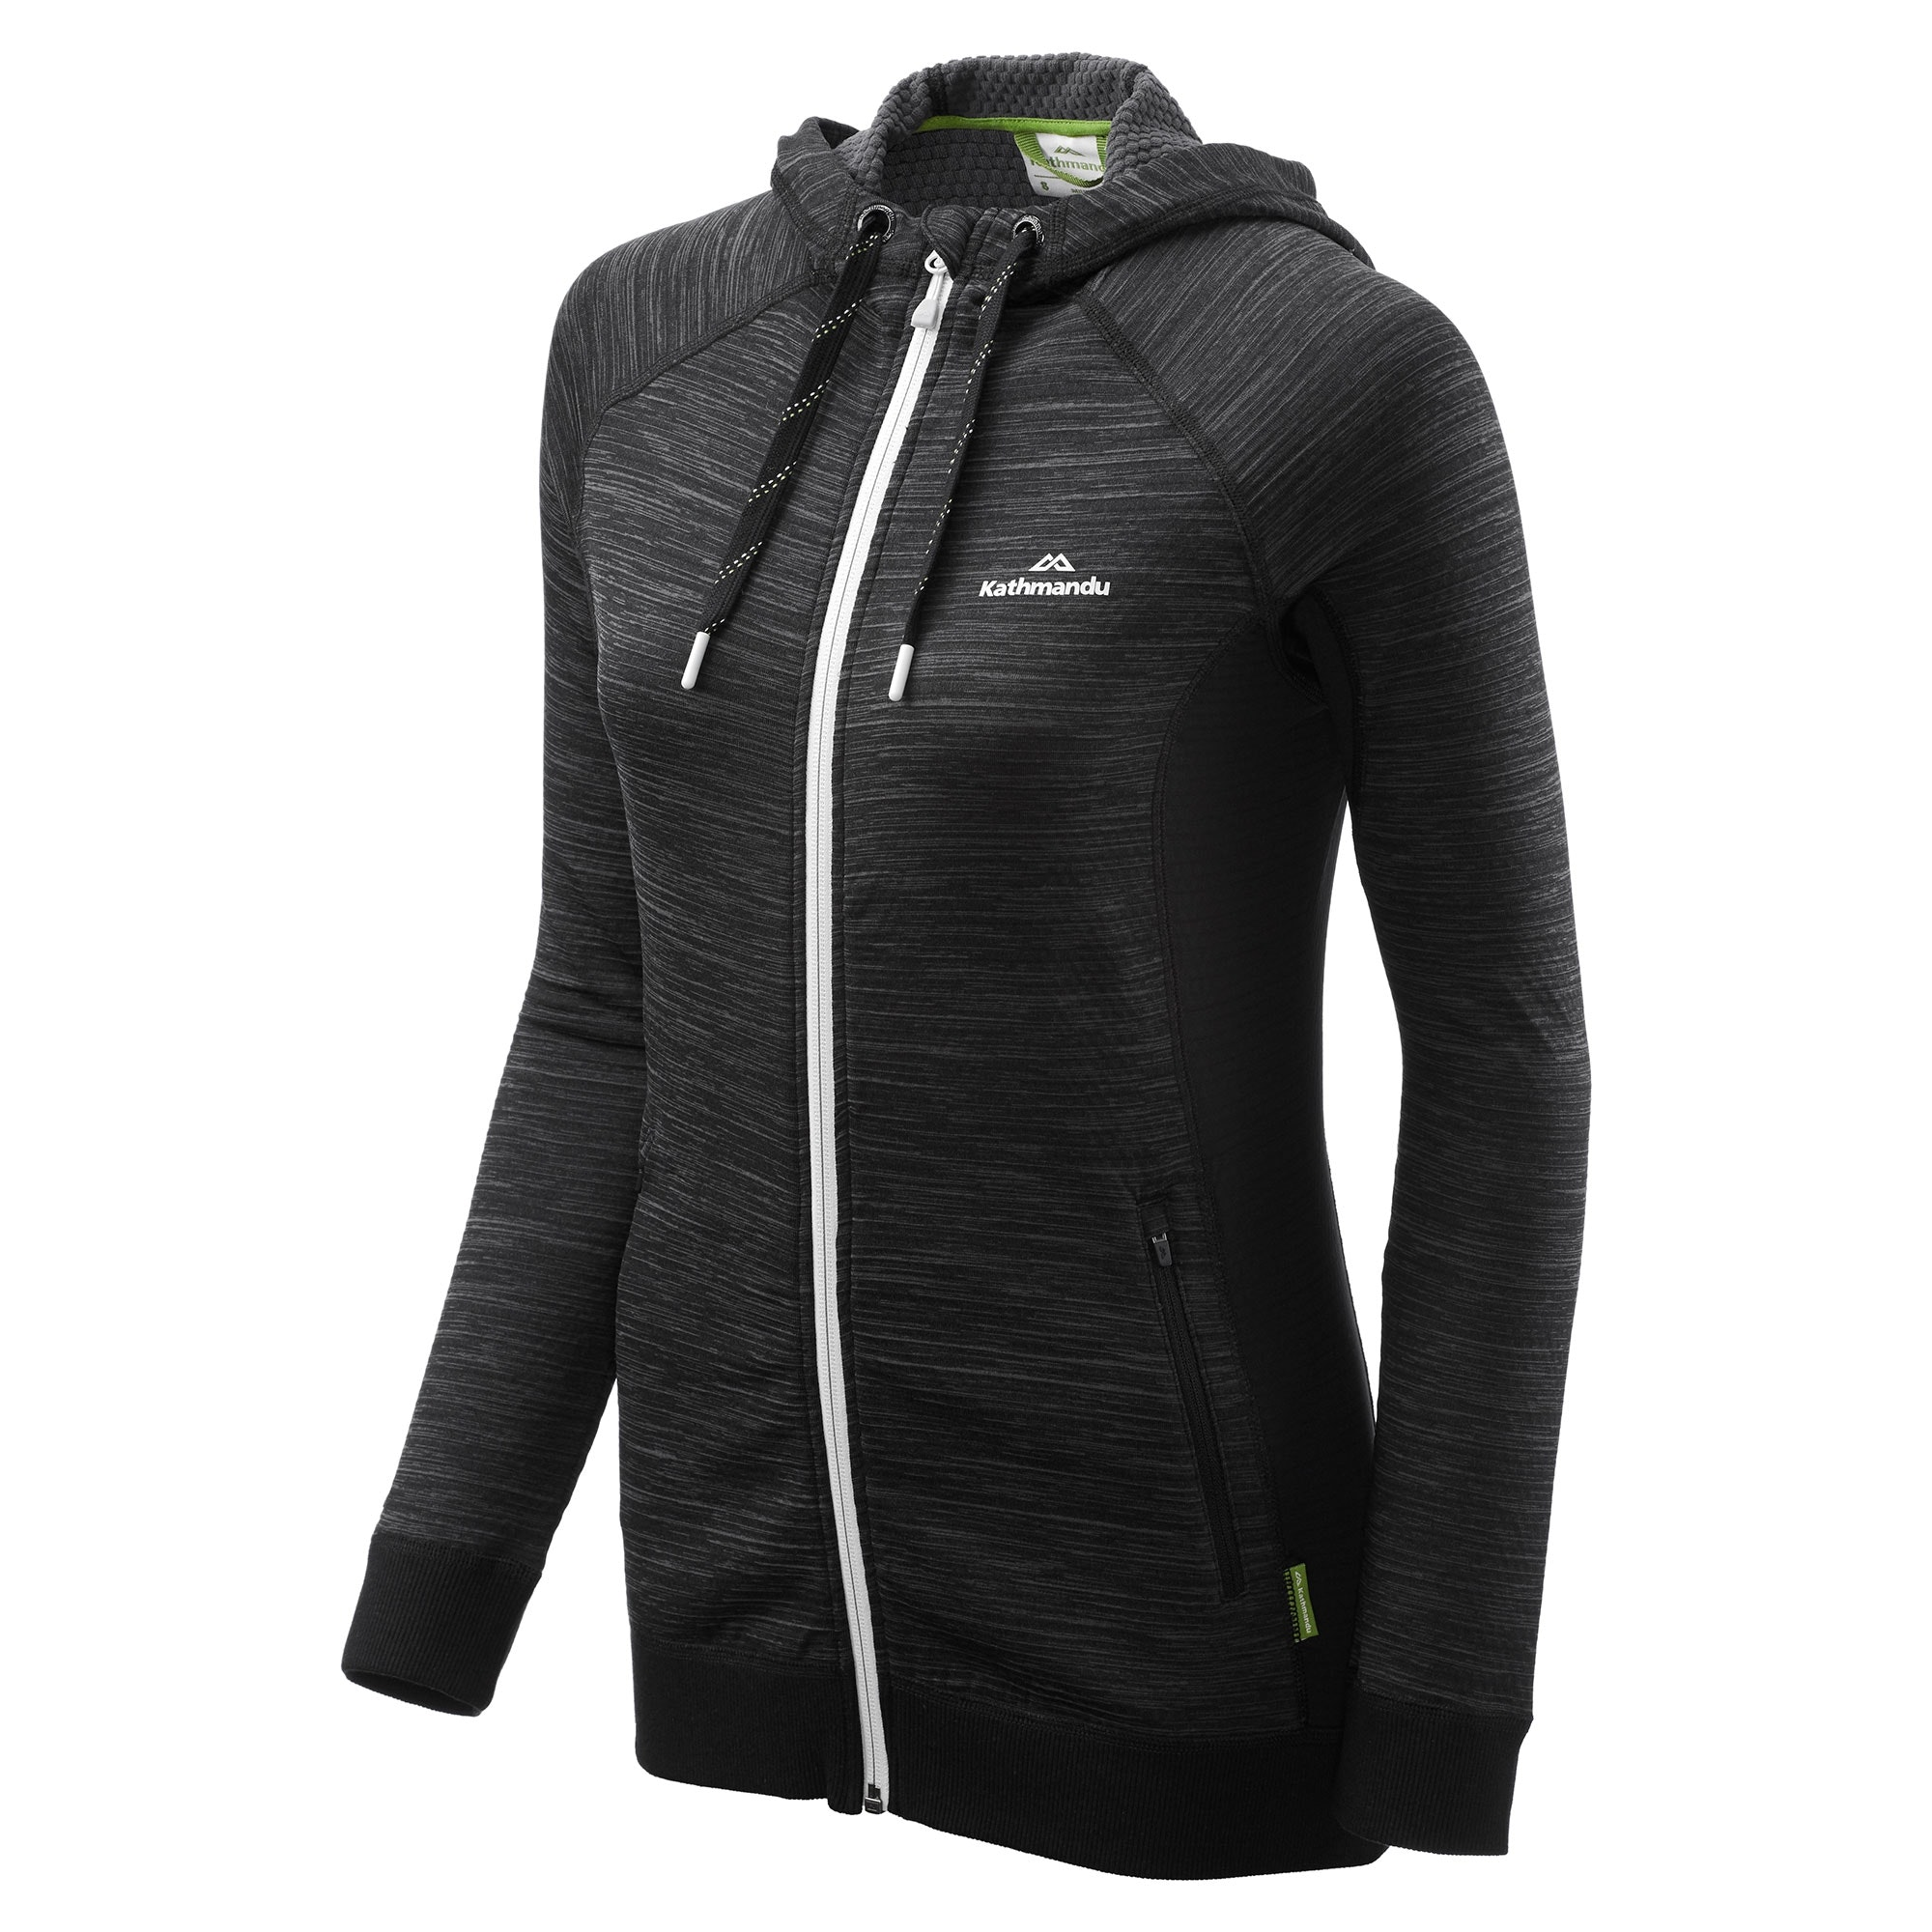 NEW-Kathmandu-Acota-Women-s-Hooded-Fleece-Lightweight-Breathable-Outdoor-Jacket thumbnail 13